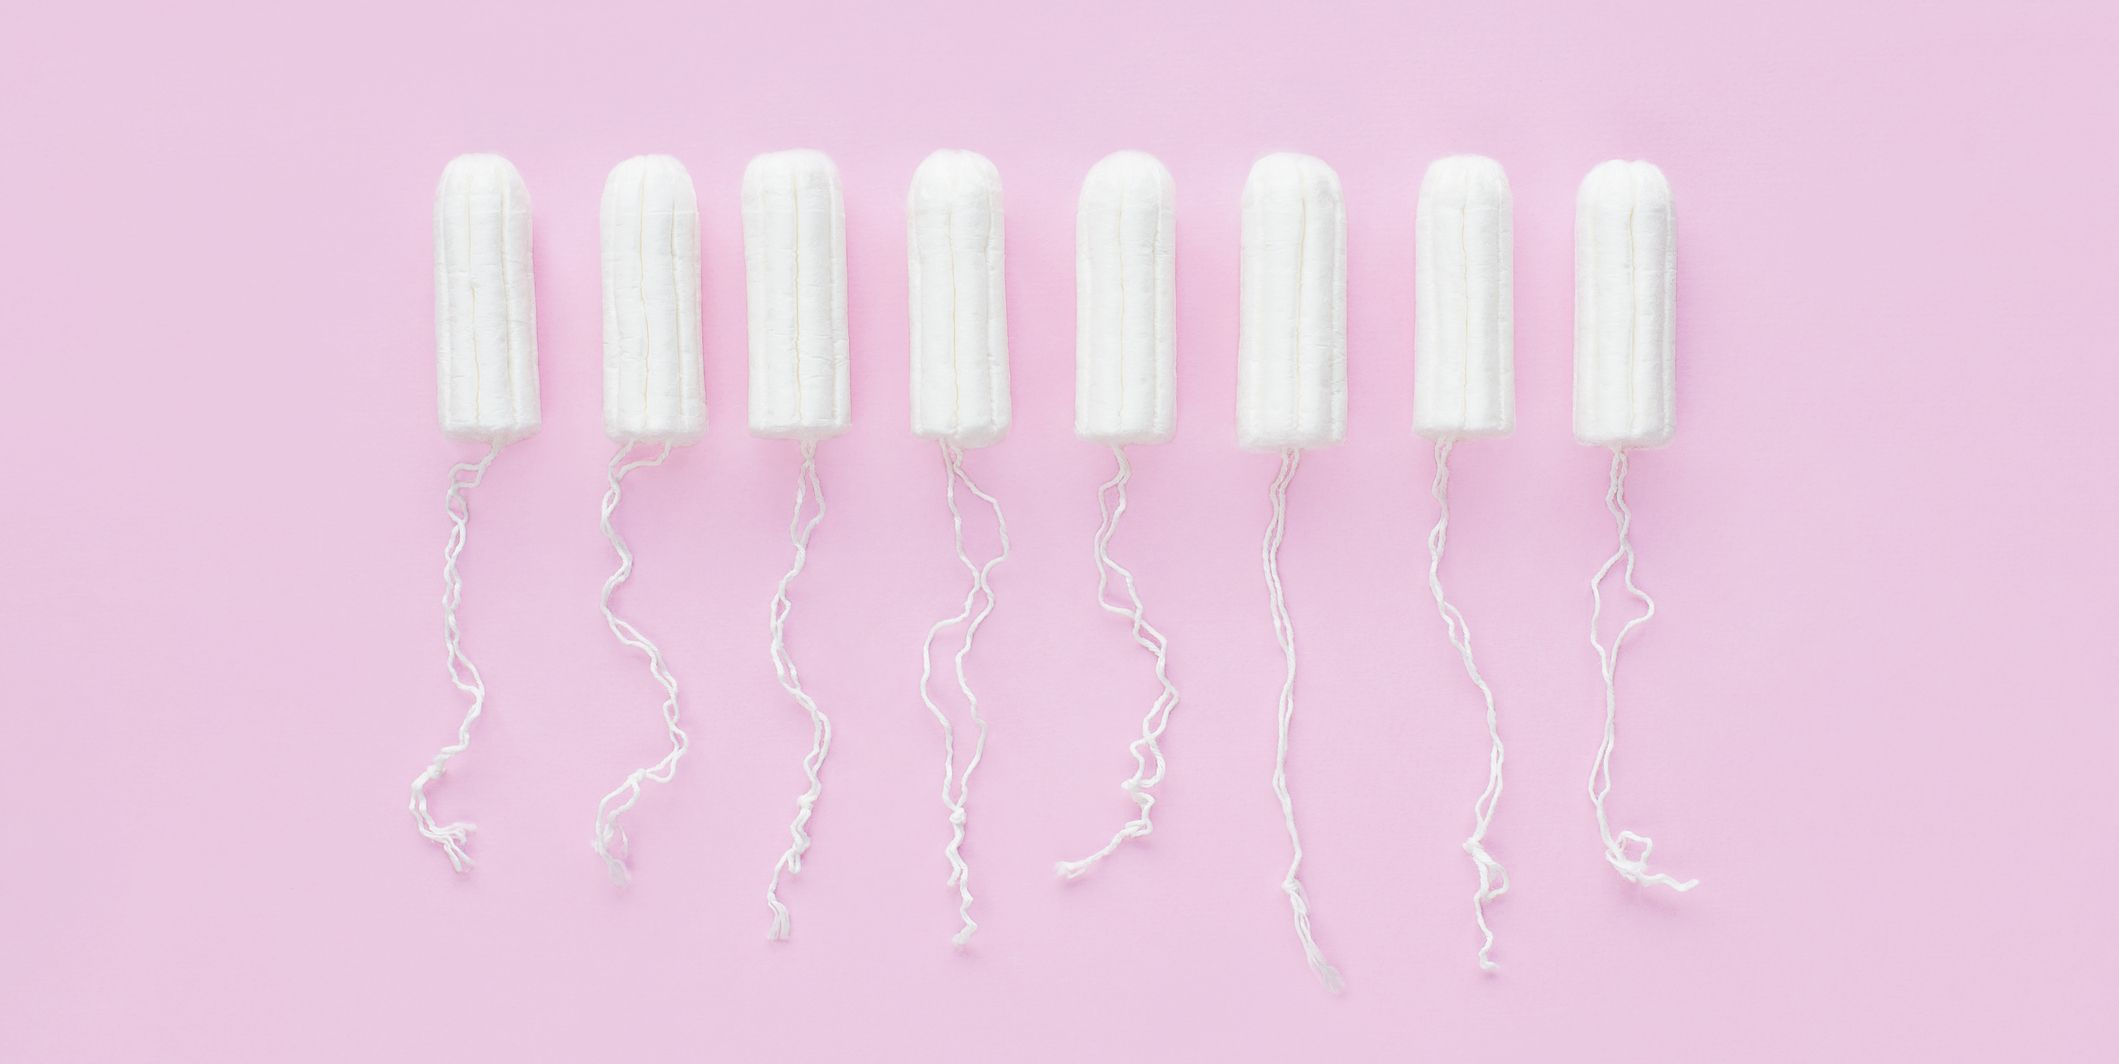 Menstrual period concept. Woman hygiene protection. Cotton tampons on pink background. Top view, flat lay.